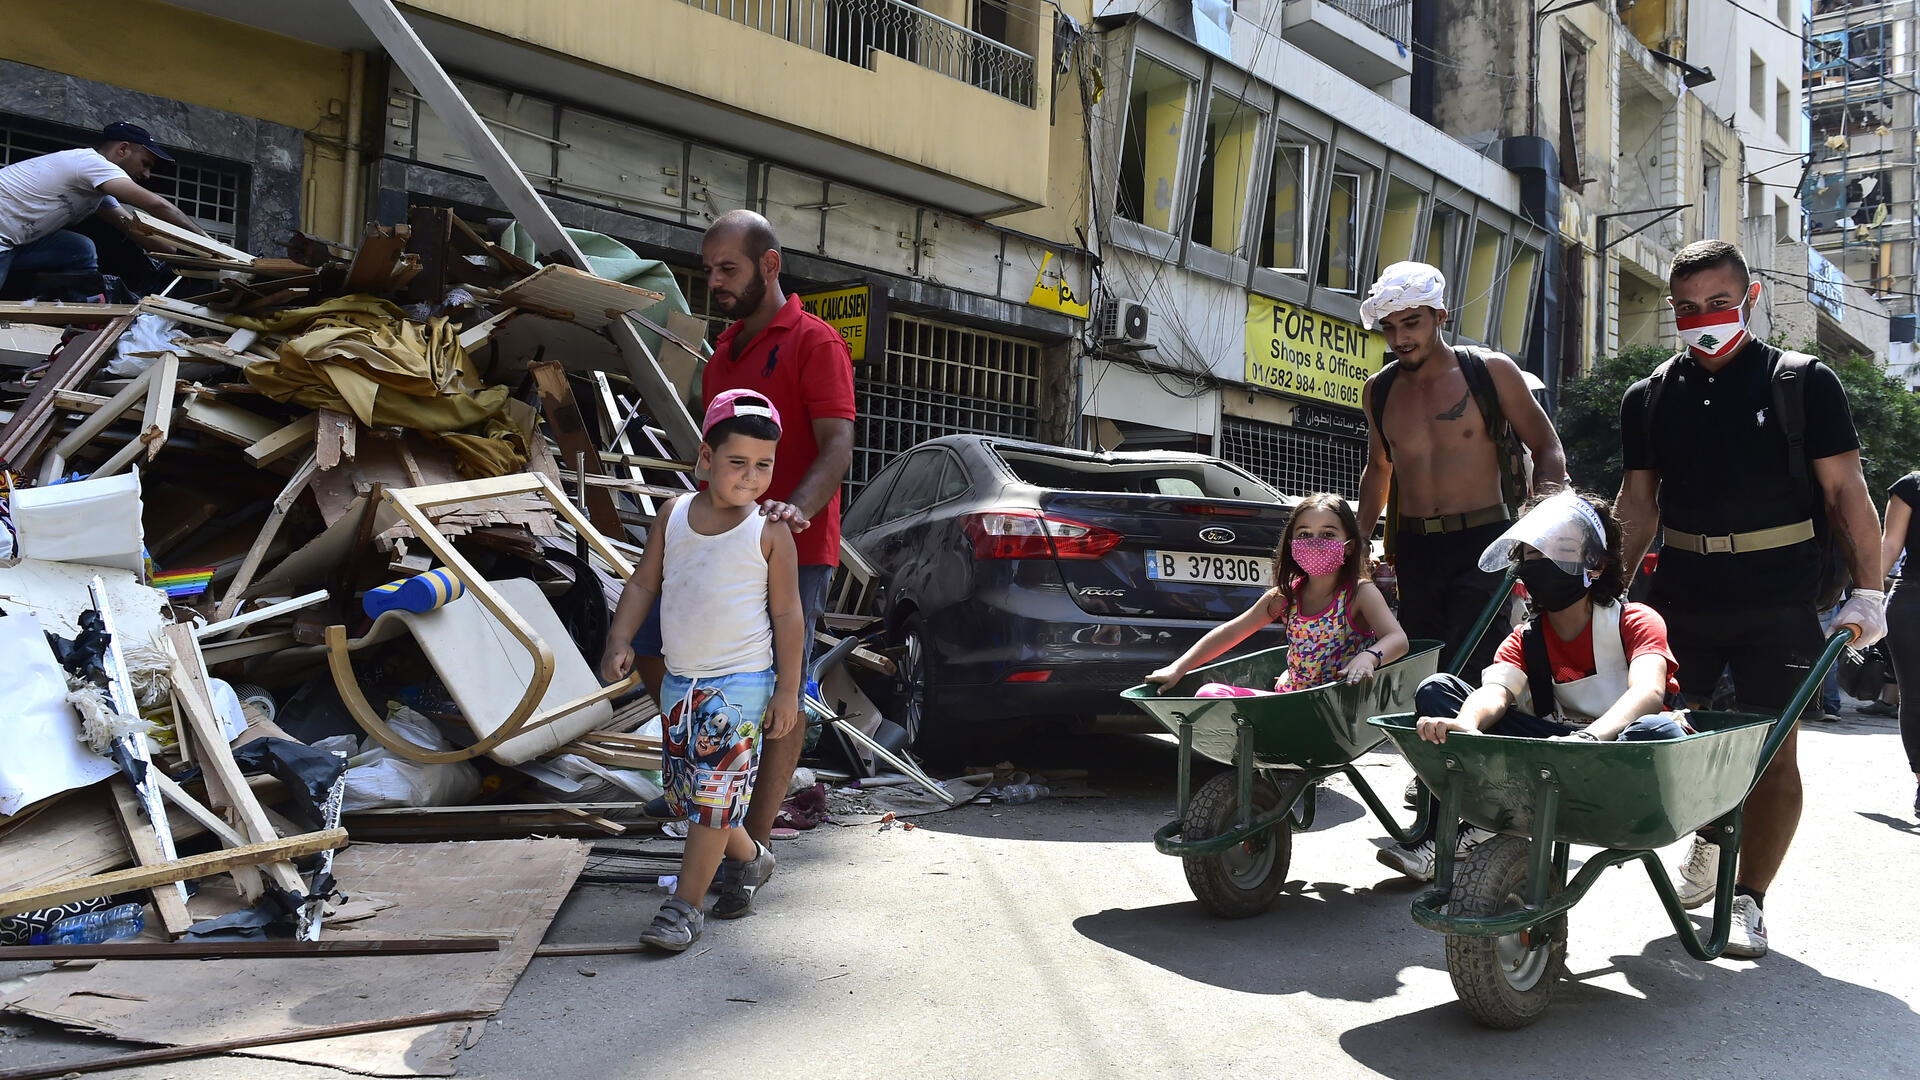 Two men push children in wheelbarrows past damage from the Aug 4, 2020 explosion in Beirut, Lebanon. Getty photo